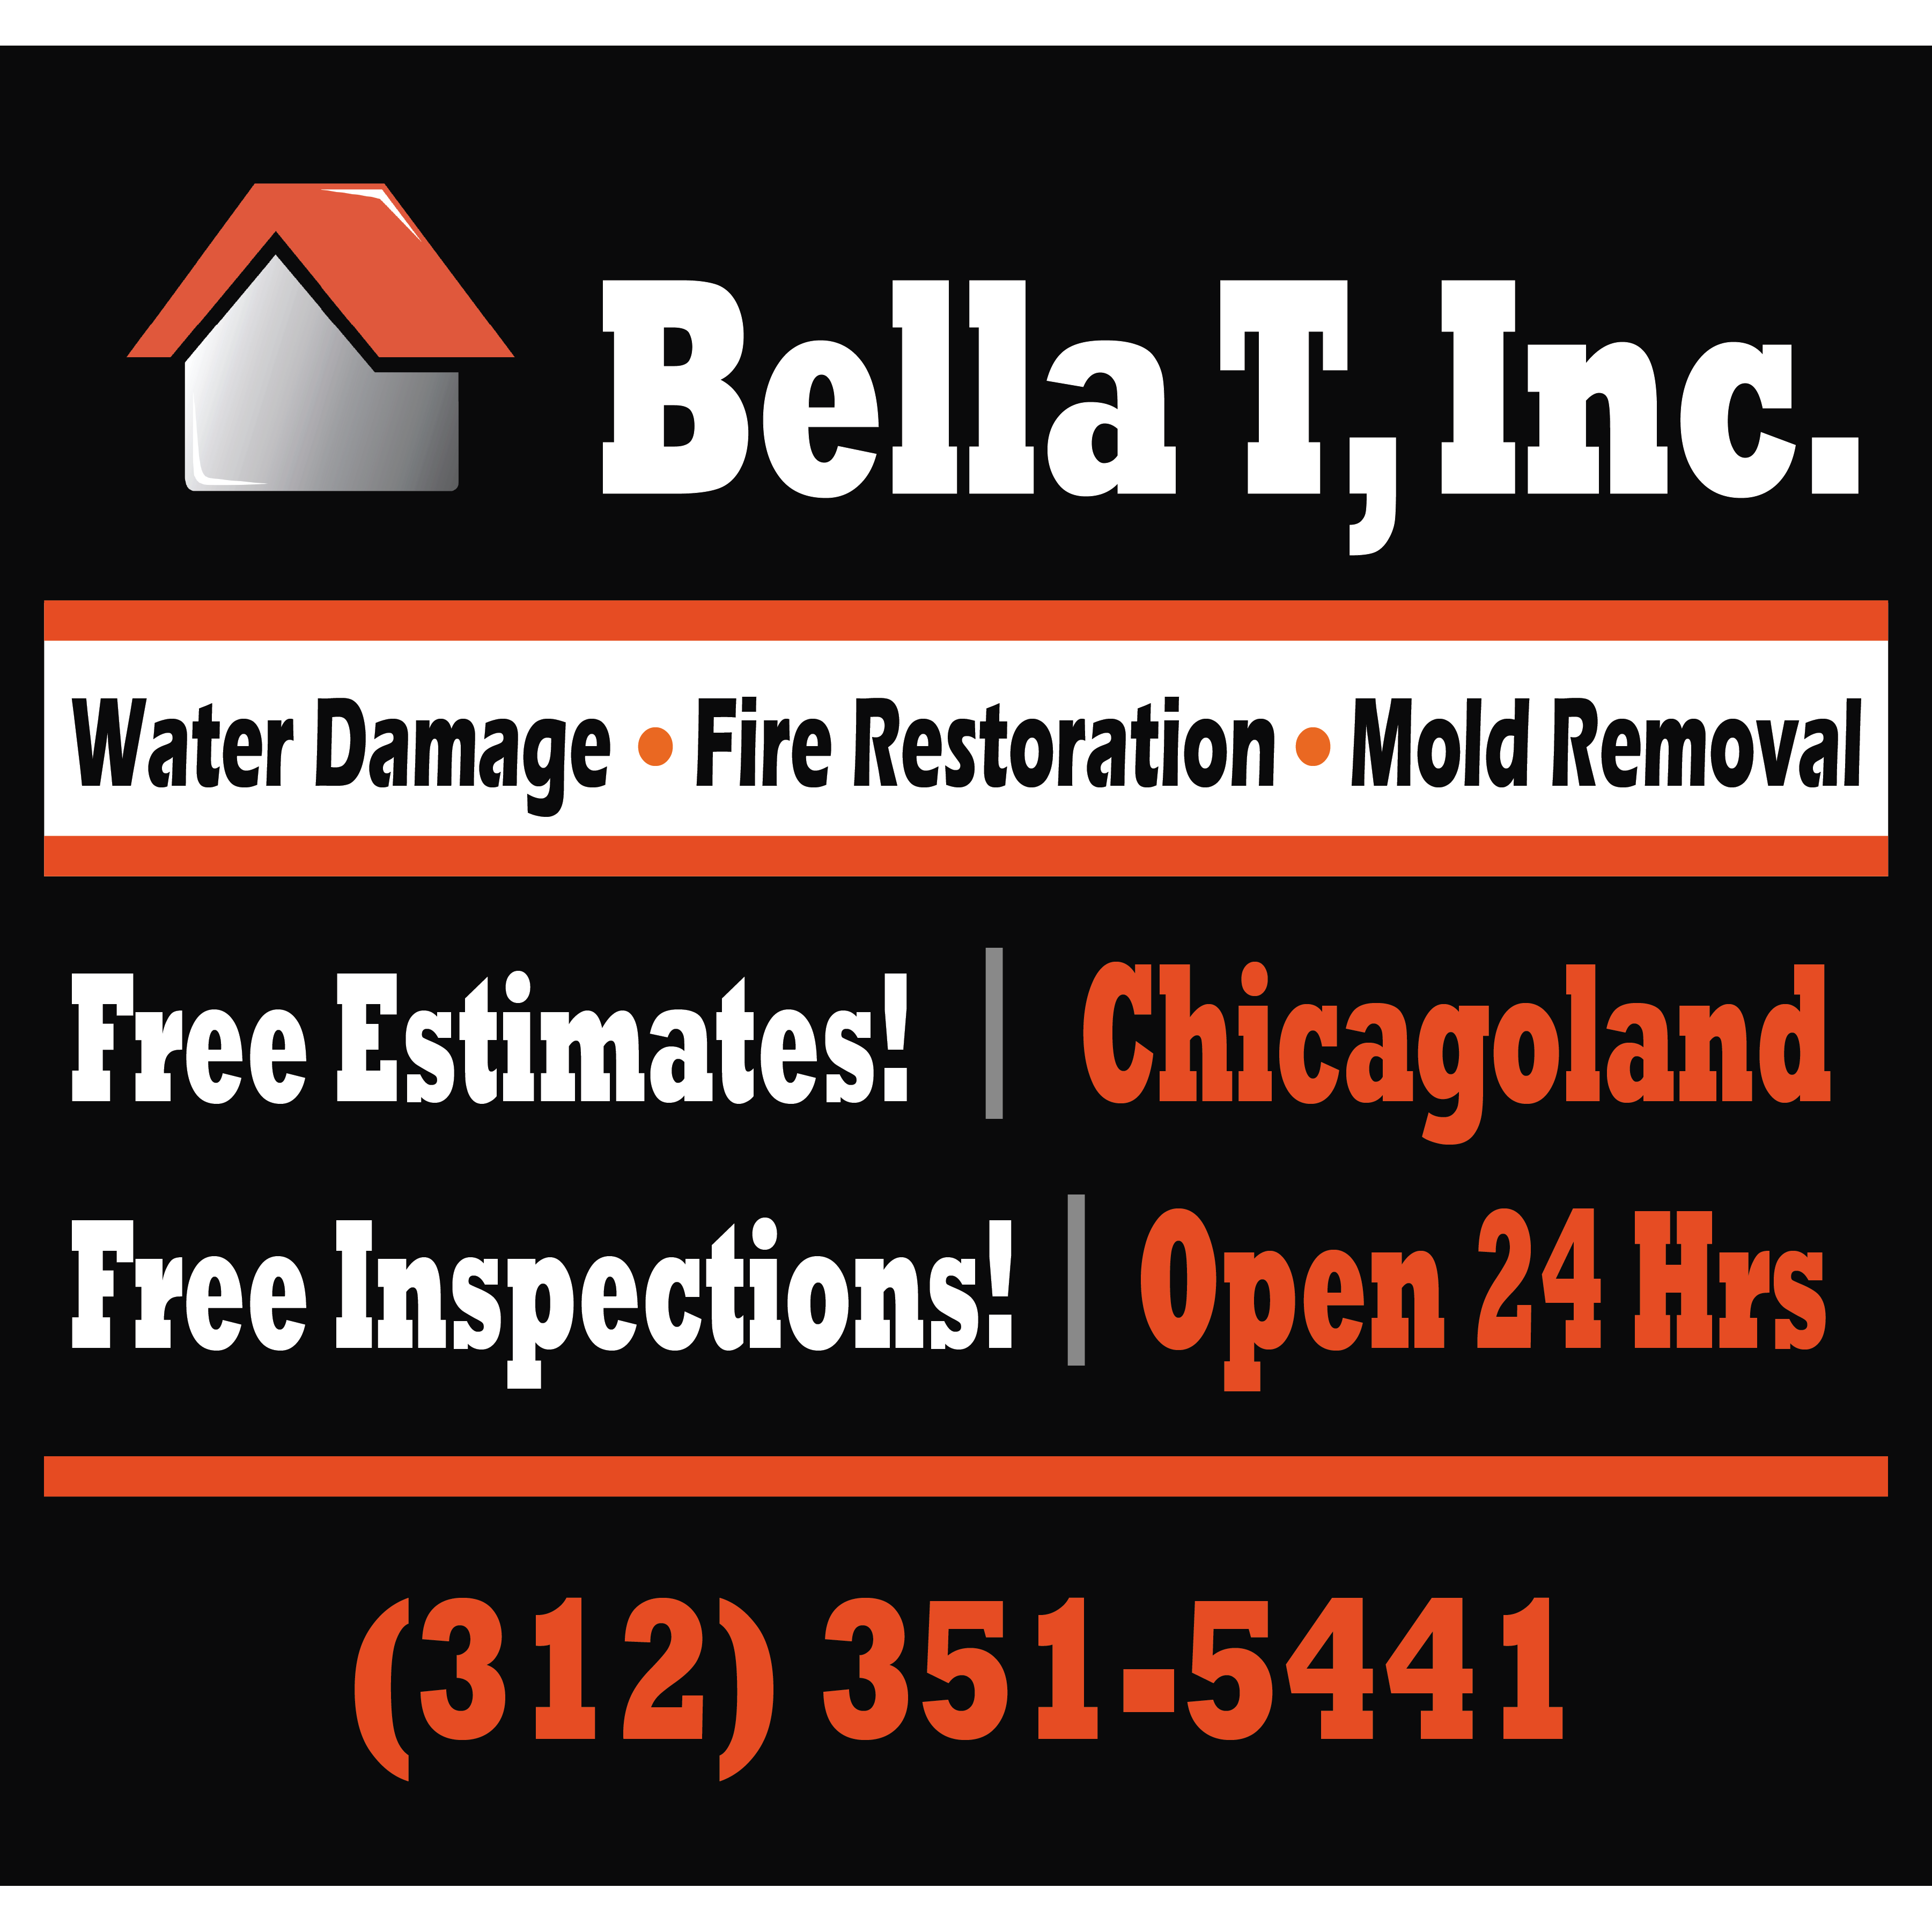 Bella Mold Removal - Chicago, IL - Water & Fire Damage Restoration